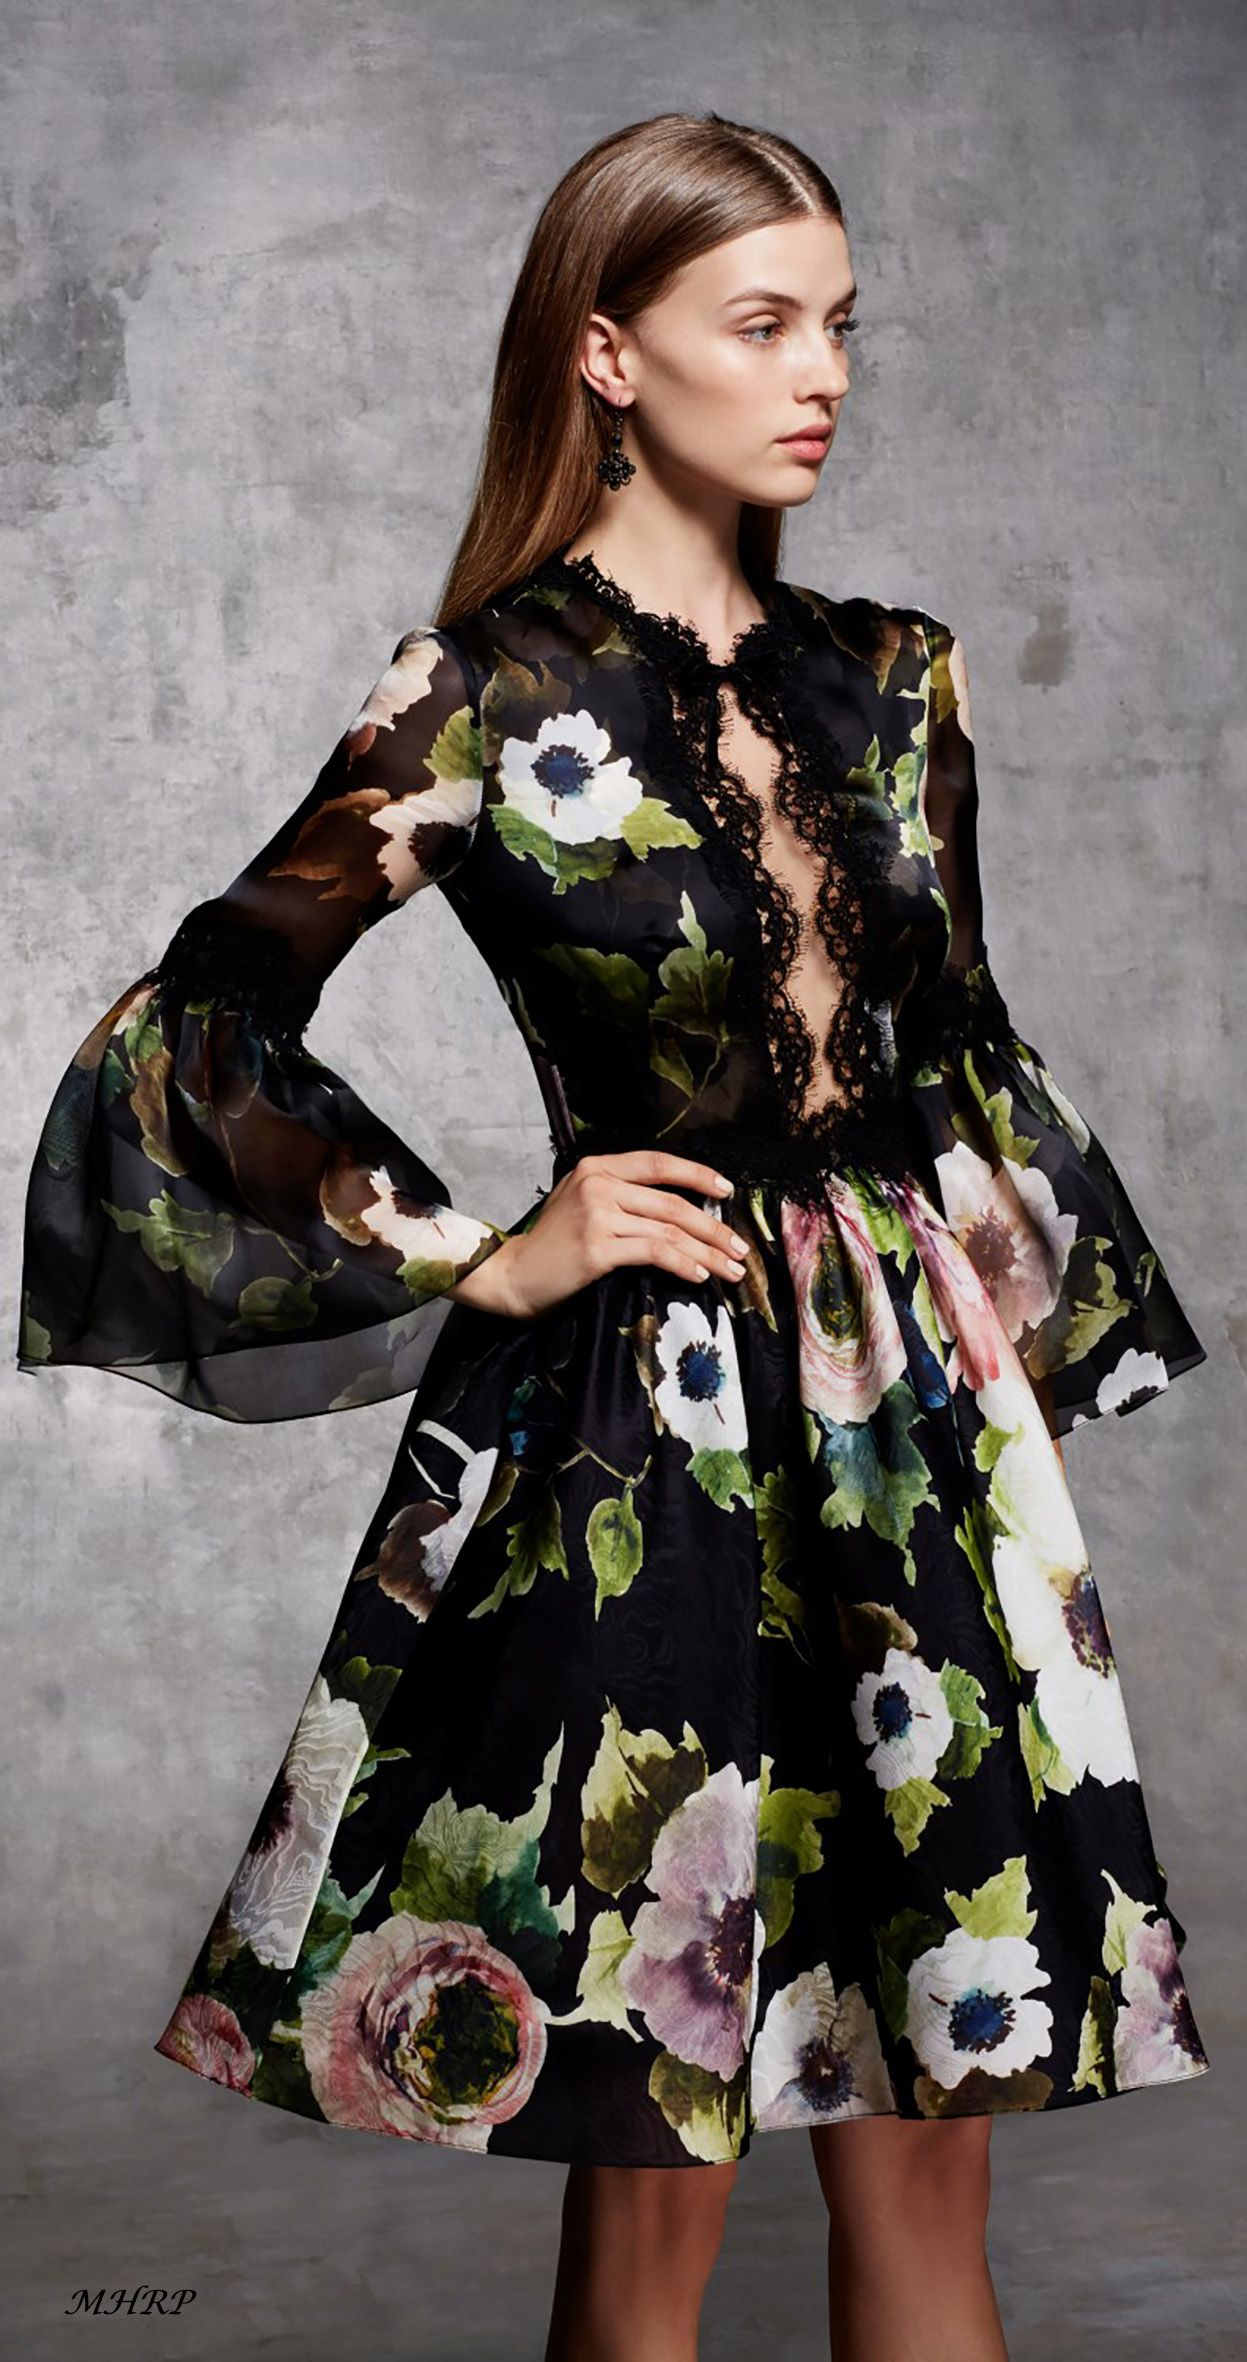 Marchesa Pre-Fall 2018 - image pinned from marchesa.com